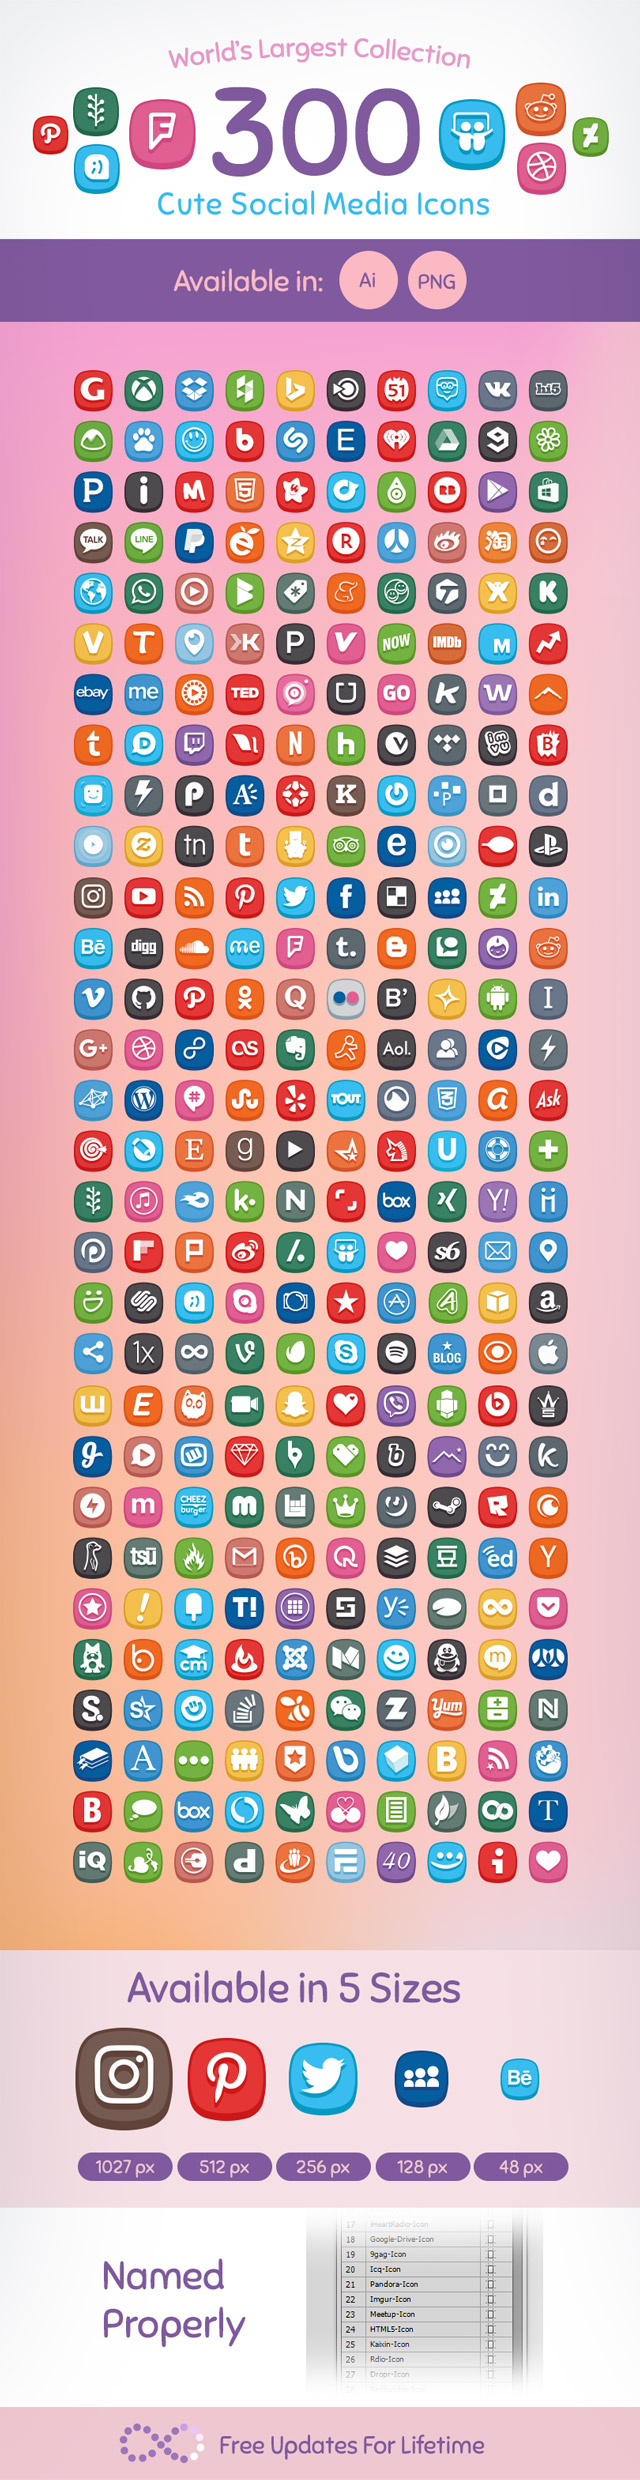 300 Cute Social Media Icons 2017 World S Largest Collection Social Media Icons